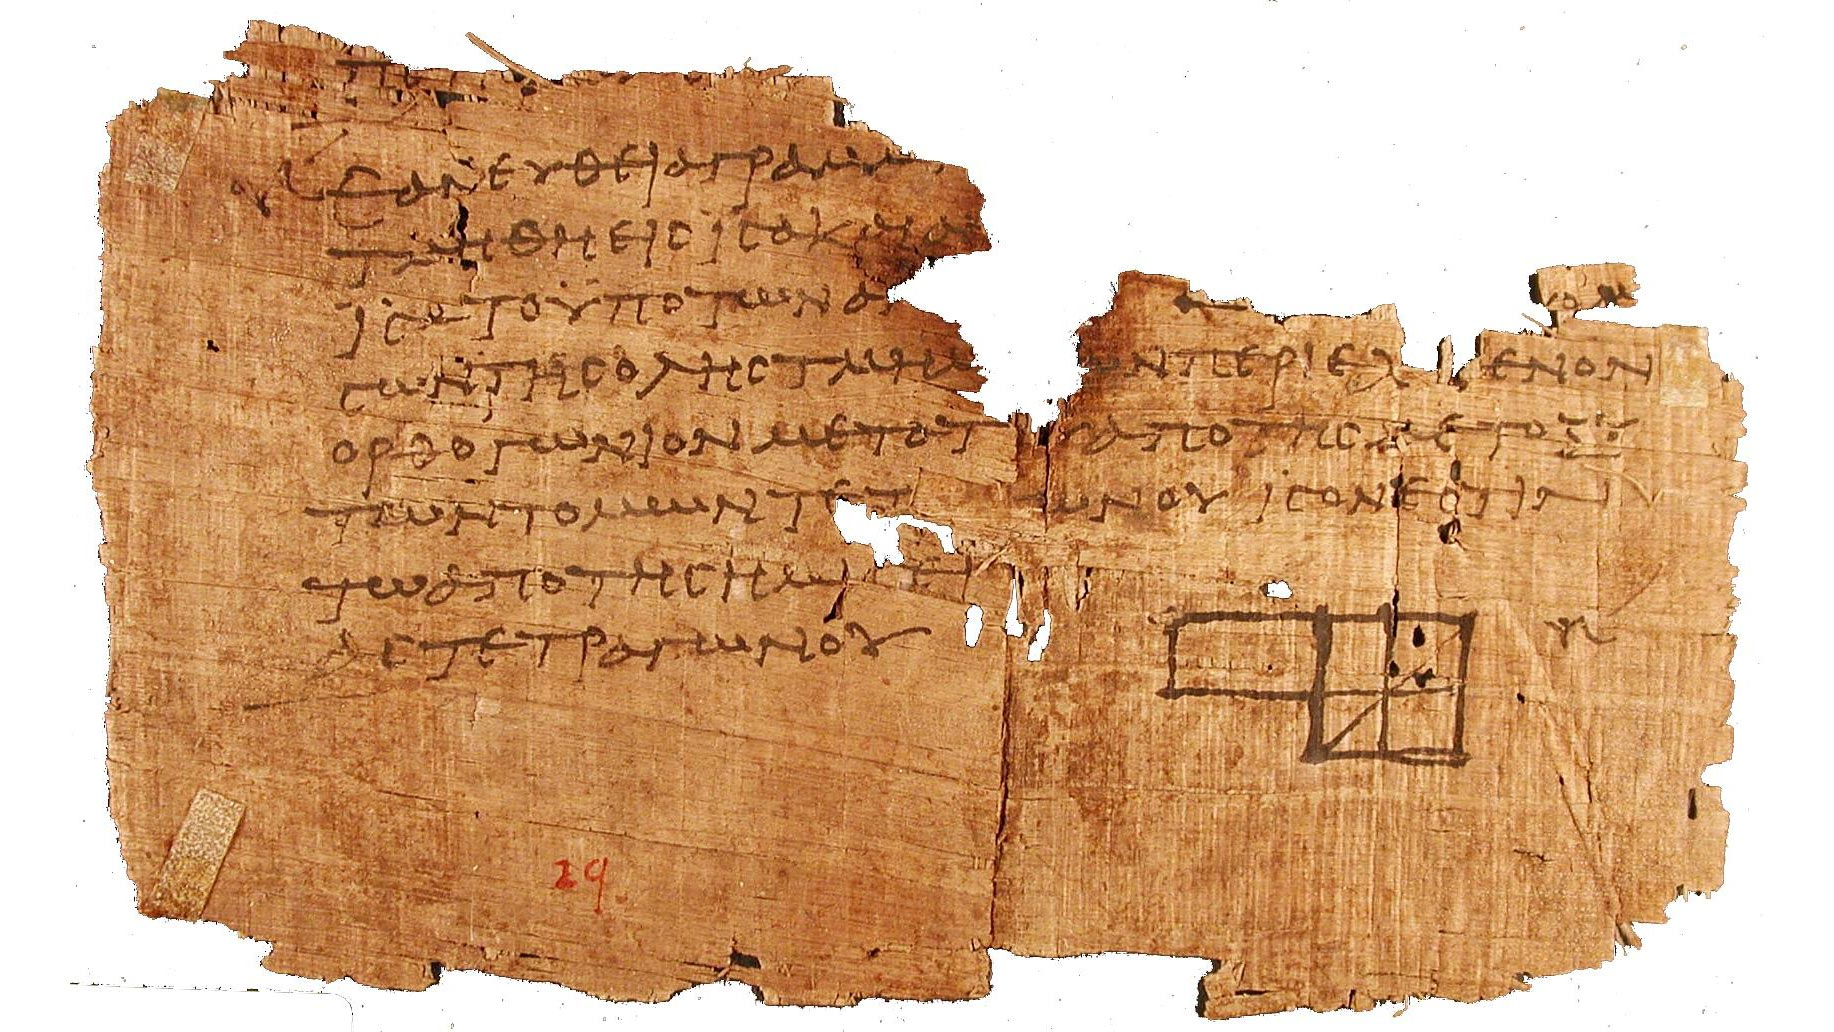 One of the oldest surviving fragments of Euclid's Elements, found at Oxyrhynchus and dated to circa AD 100.